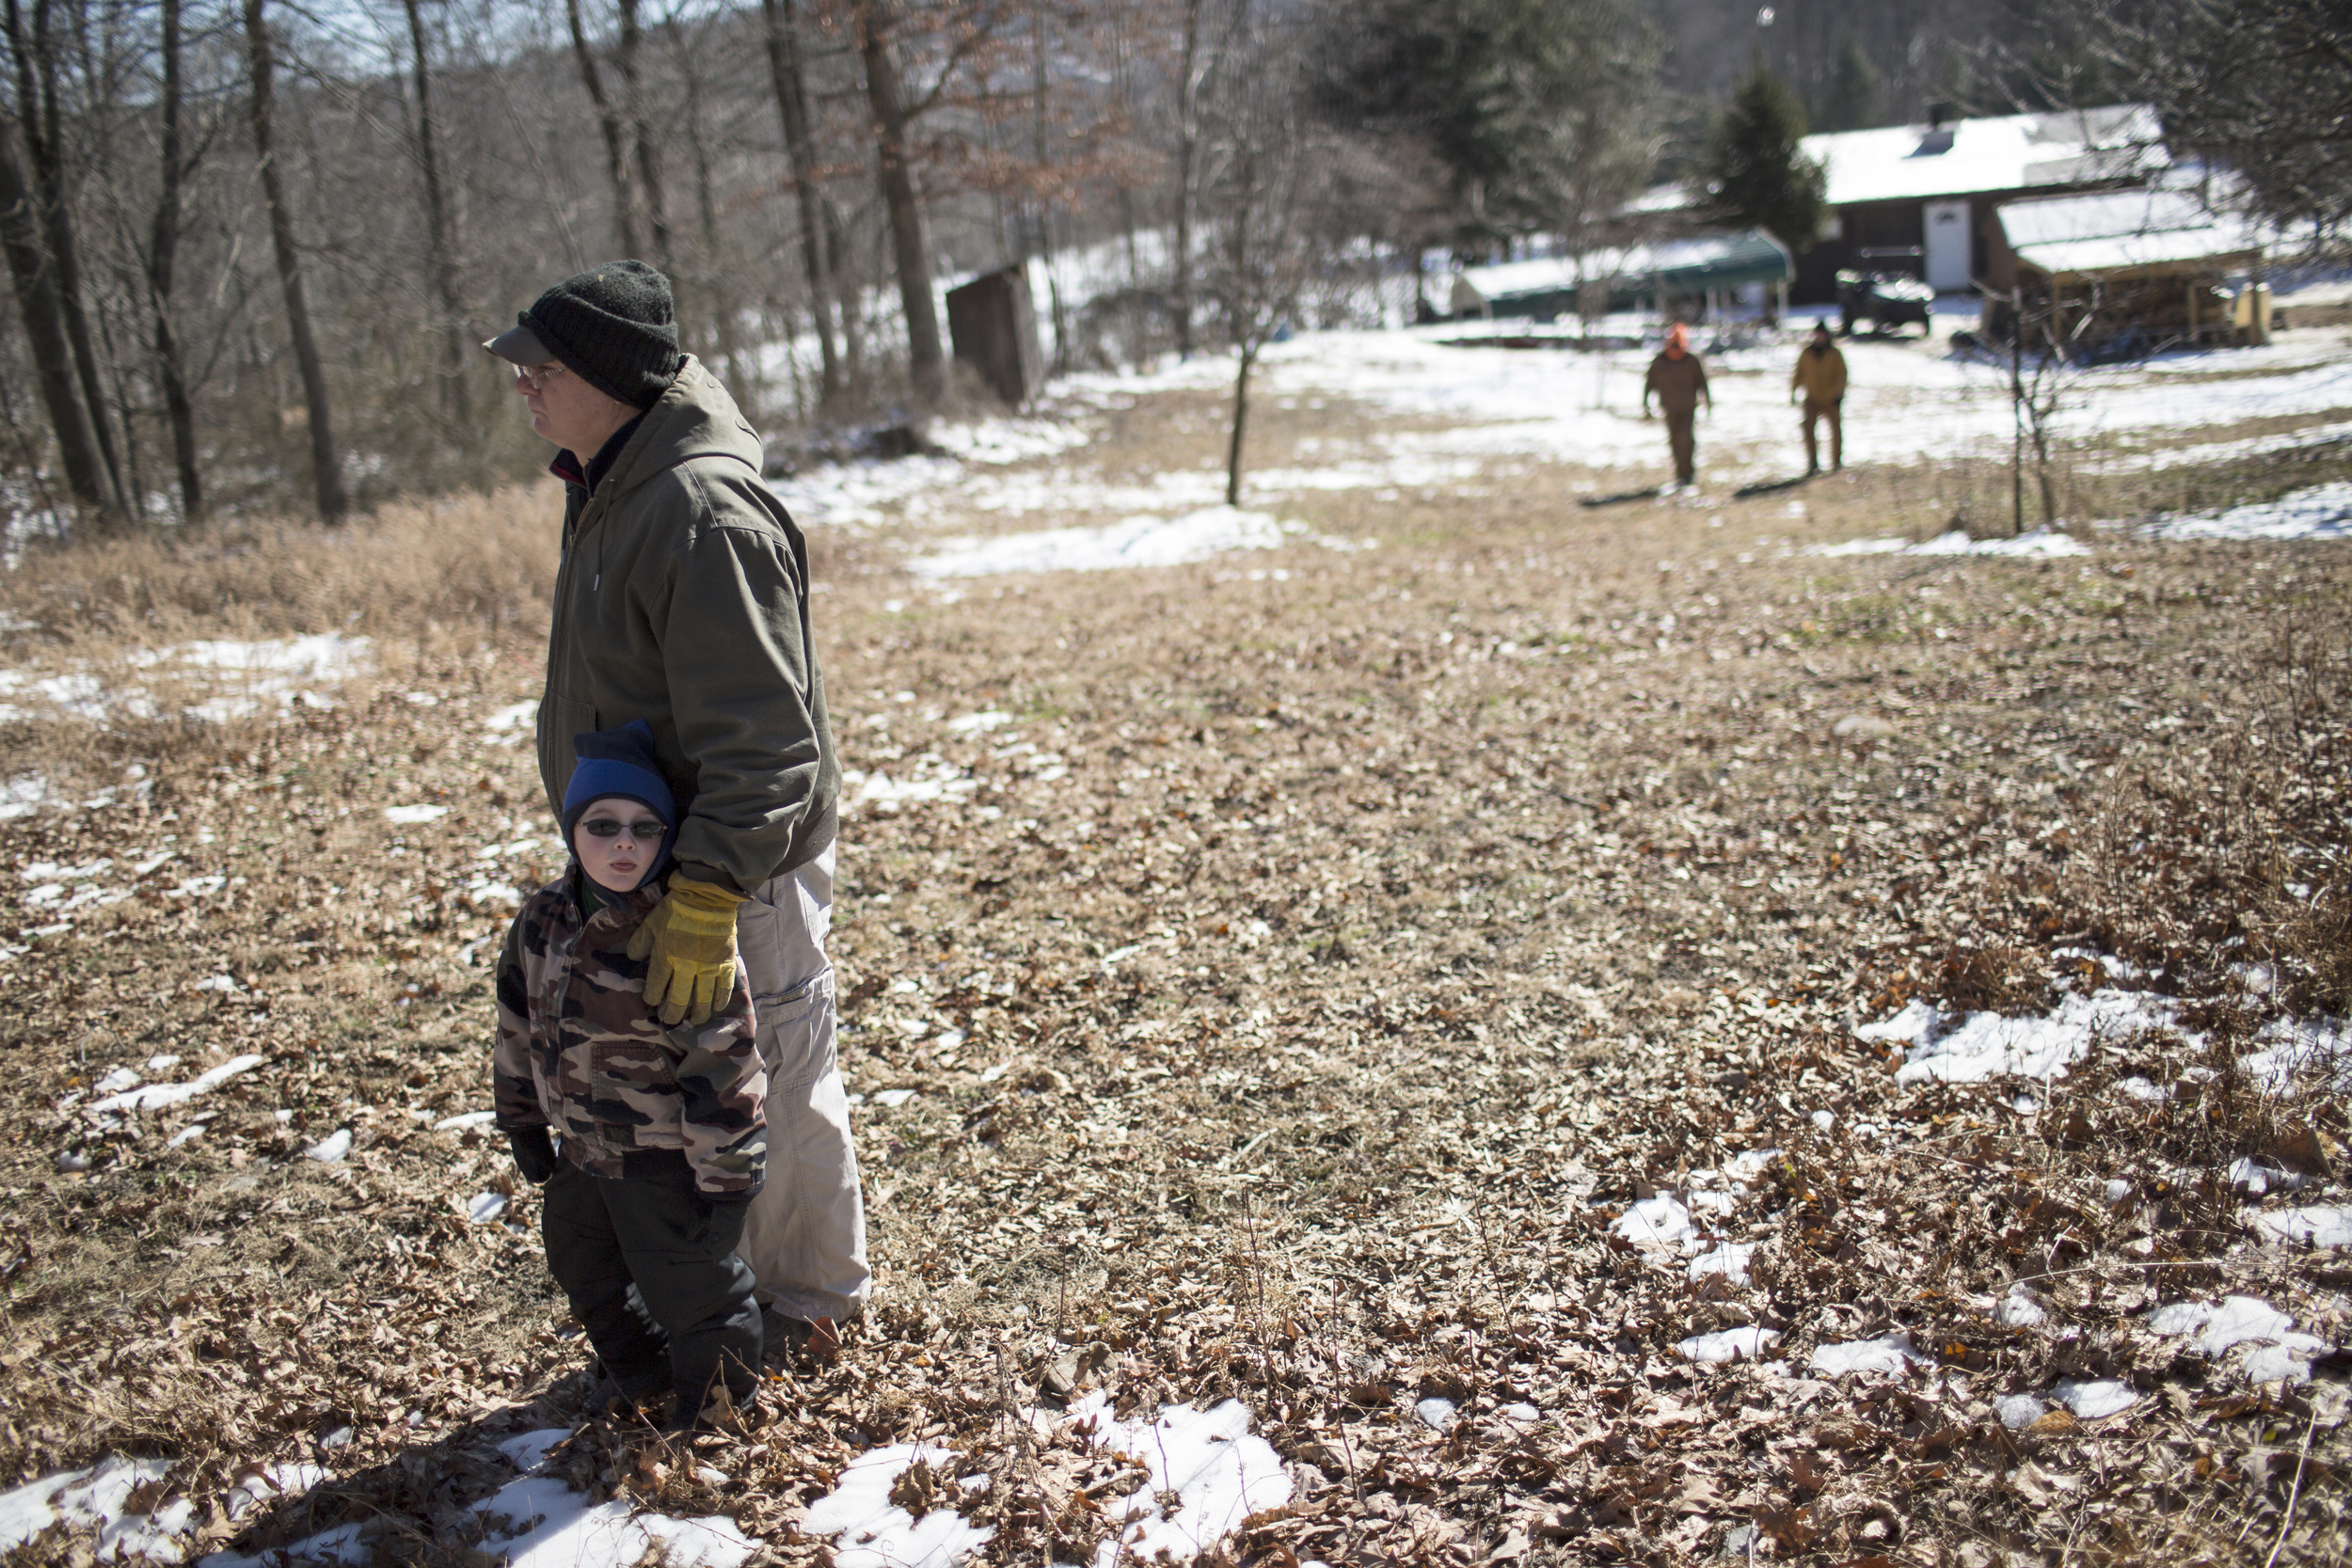 Dick stands with a young boy during a work party at the Heartwood Outdoors hunting camp near Indian Springs, Maryland.